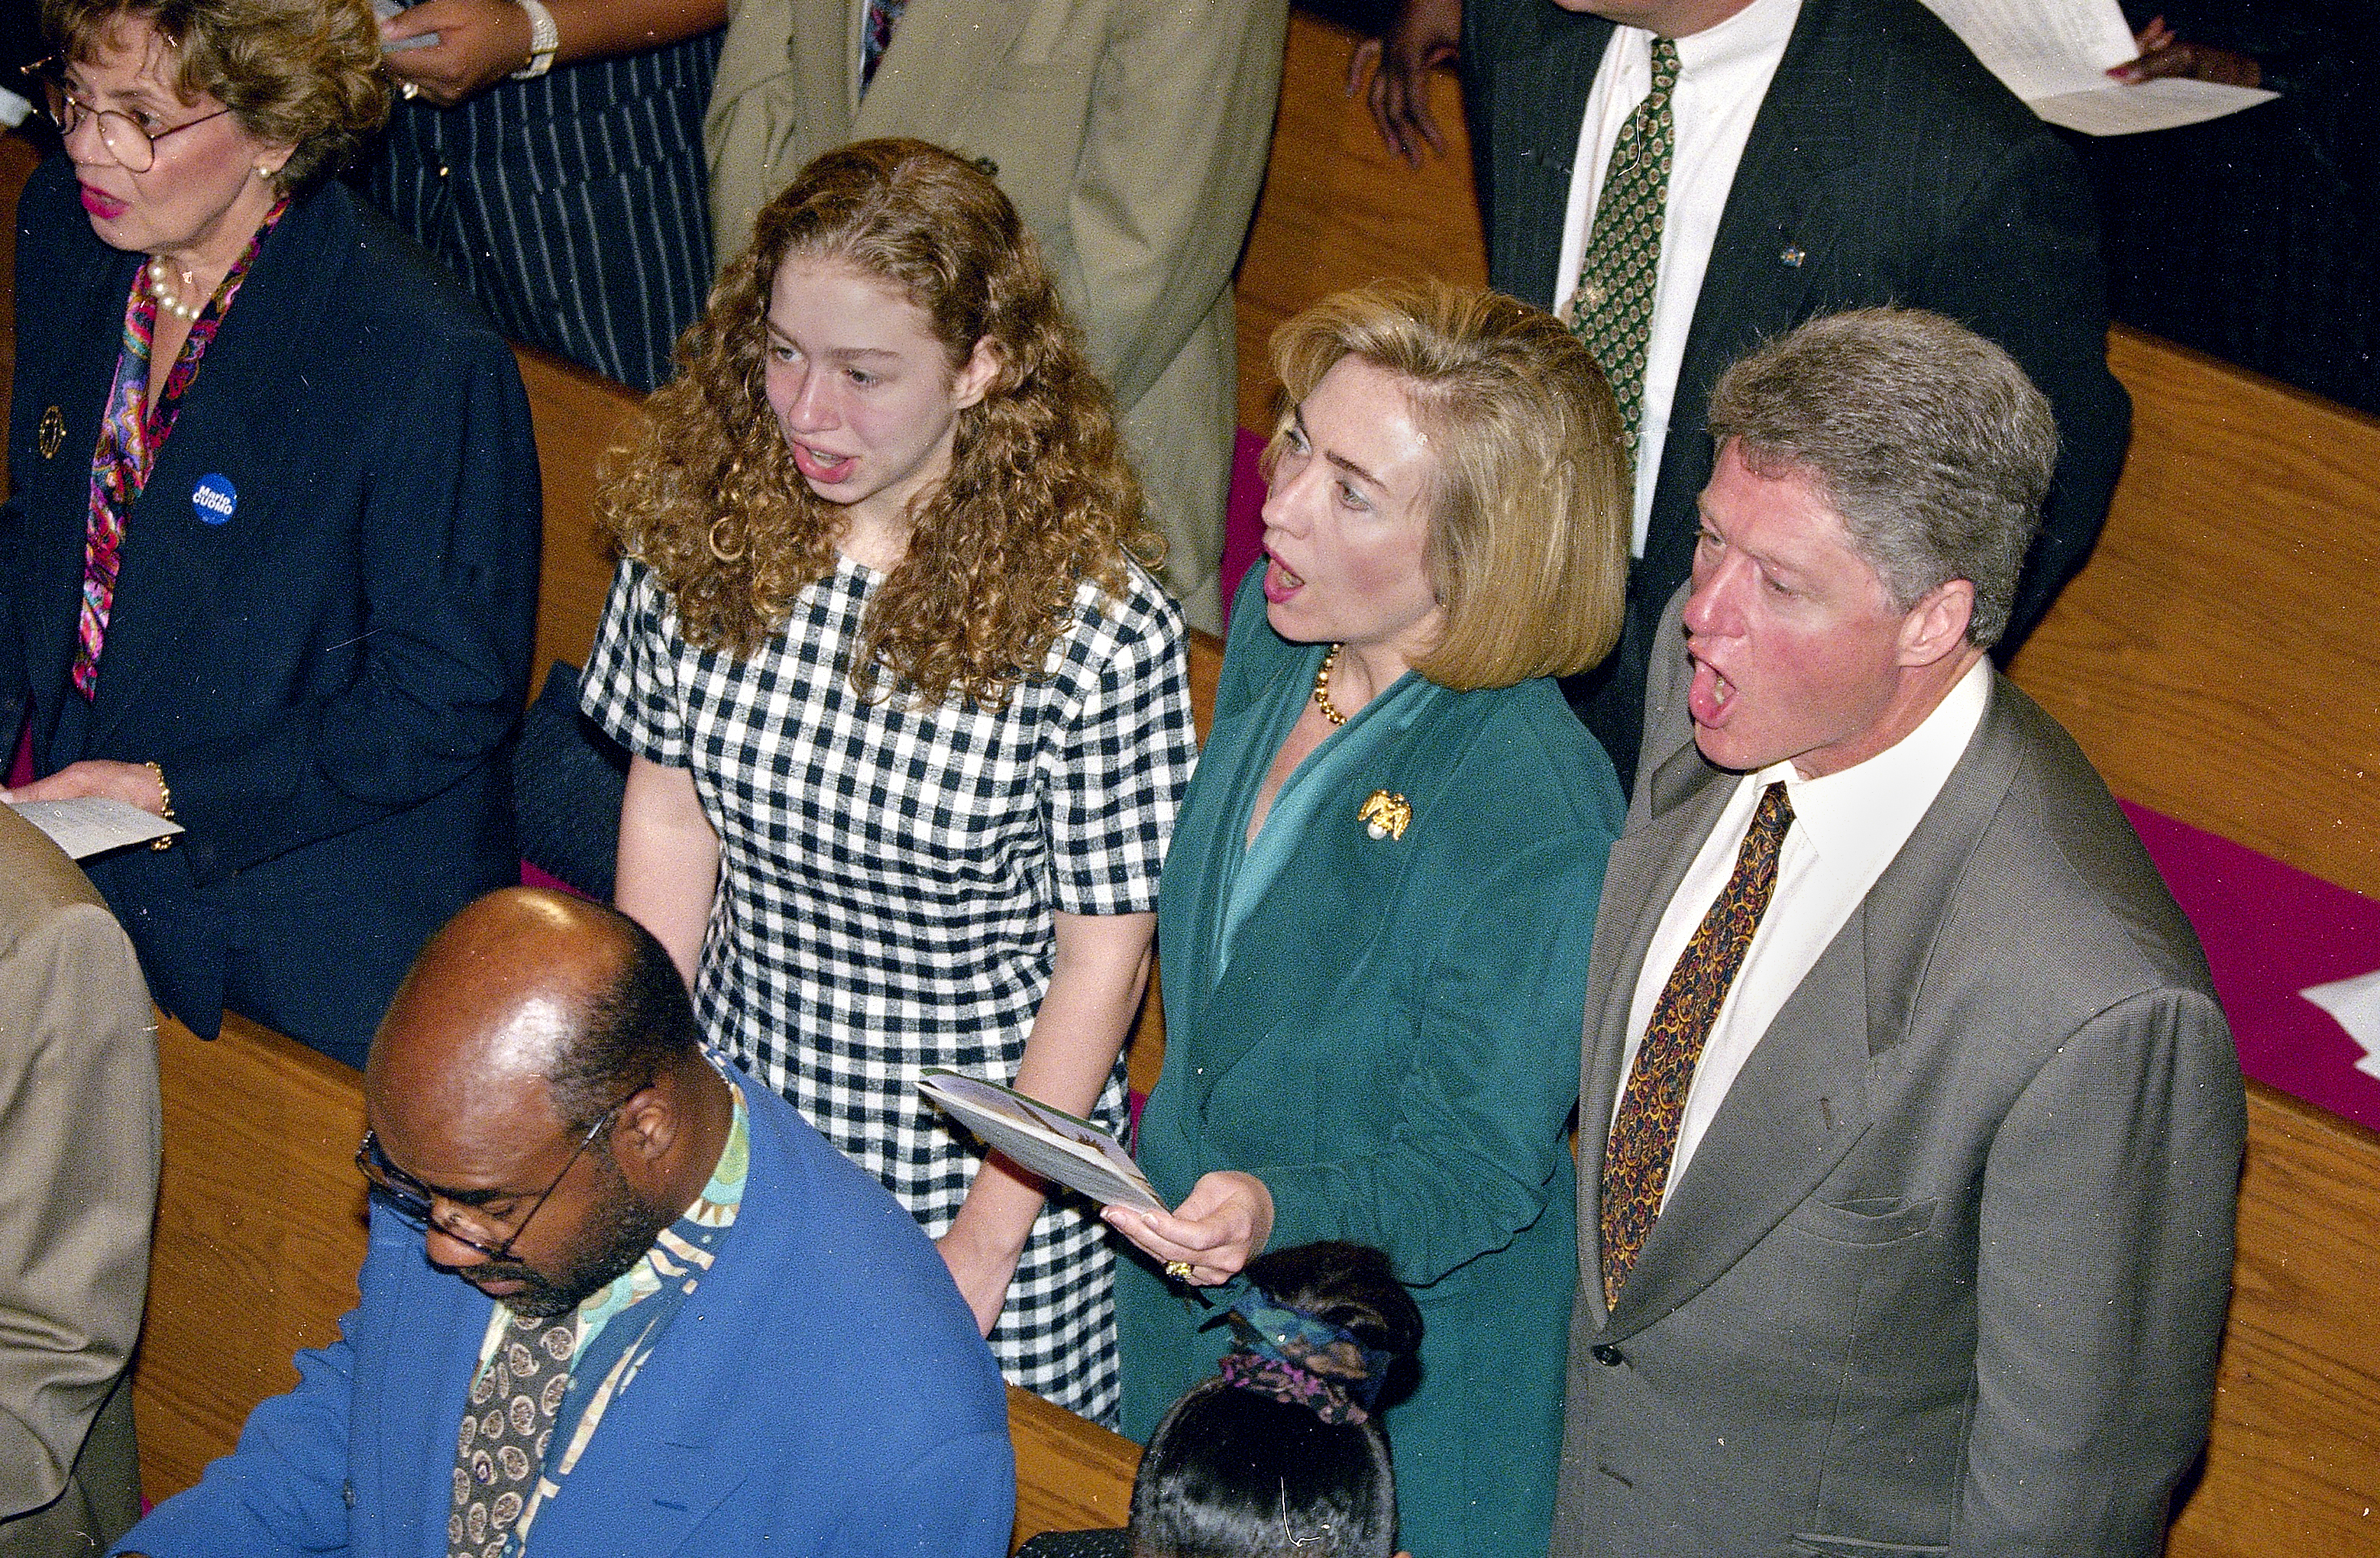 """FILE - In this Sept. 25, 1994 file photo, President Bill Clinton, first lady Hillary Rodham Clinton and their daughter, Chelsea, sing a hymn during church services at the Bethel African Methodist Church in the Harlem section of New York. Clinton is a lifelong Methodist. But the Rev. Bill Shillady _ who officiated at Chelsea Clinton's wedding, led a memorial service for Clinton's mother, Dorothy Rodham, and gave the closing benediction at the Democratic National Convention _ feels that many people don't really know how much her faith """"is a daily thing."""" (Associated Press)"""